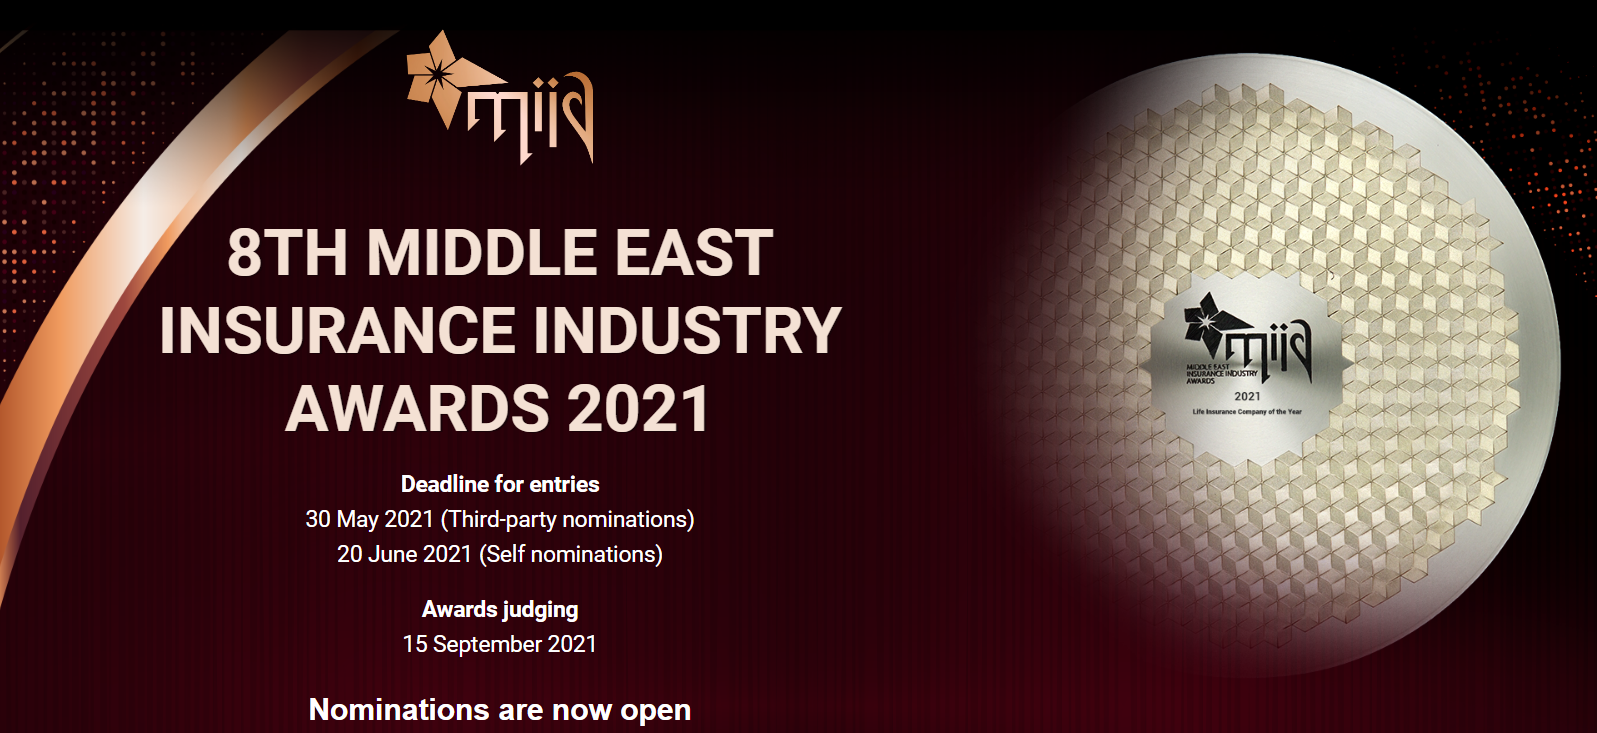 8th Middle East Insurance Industry Awards 2021